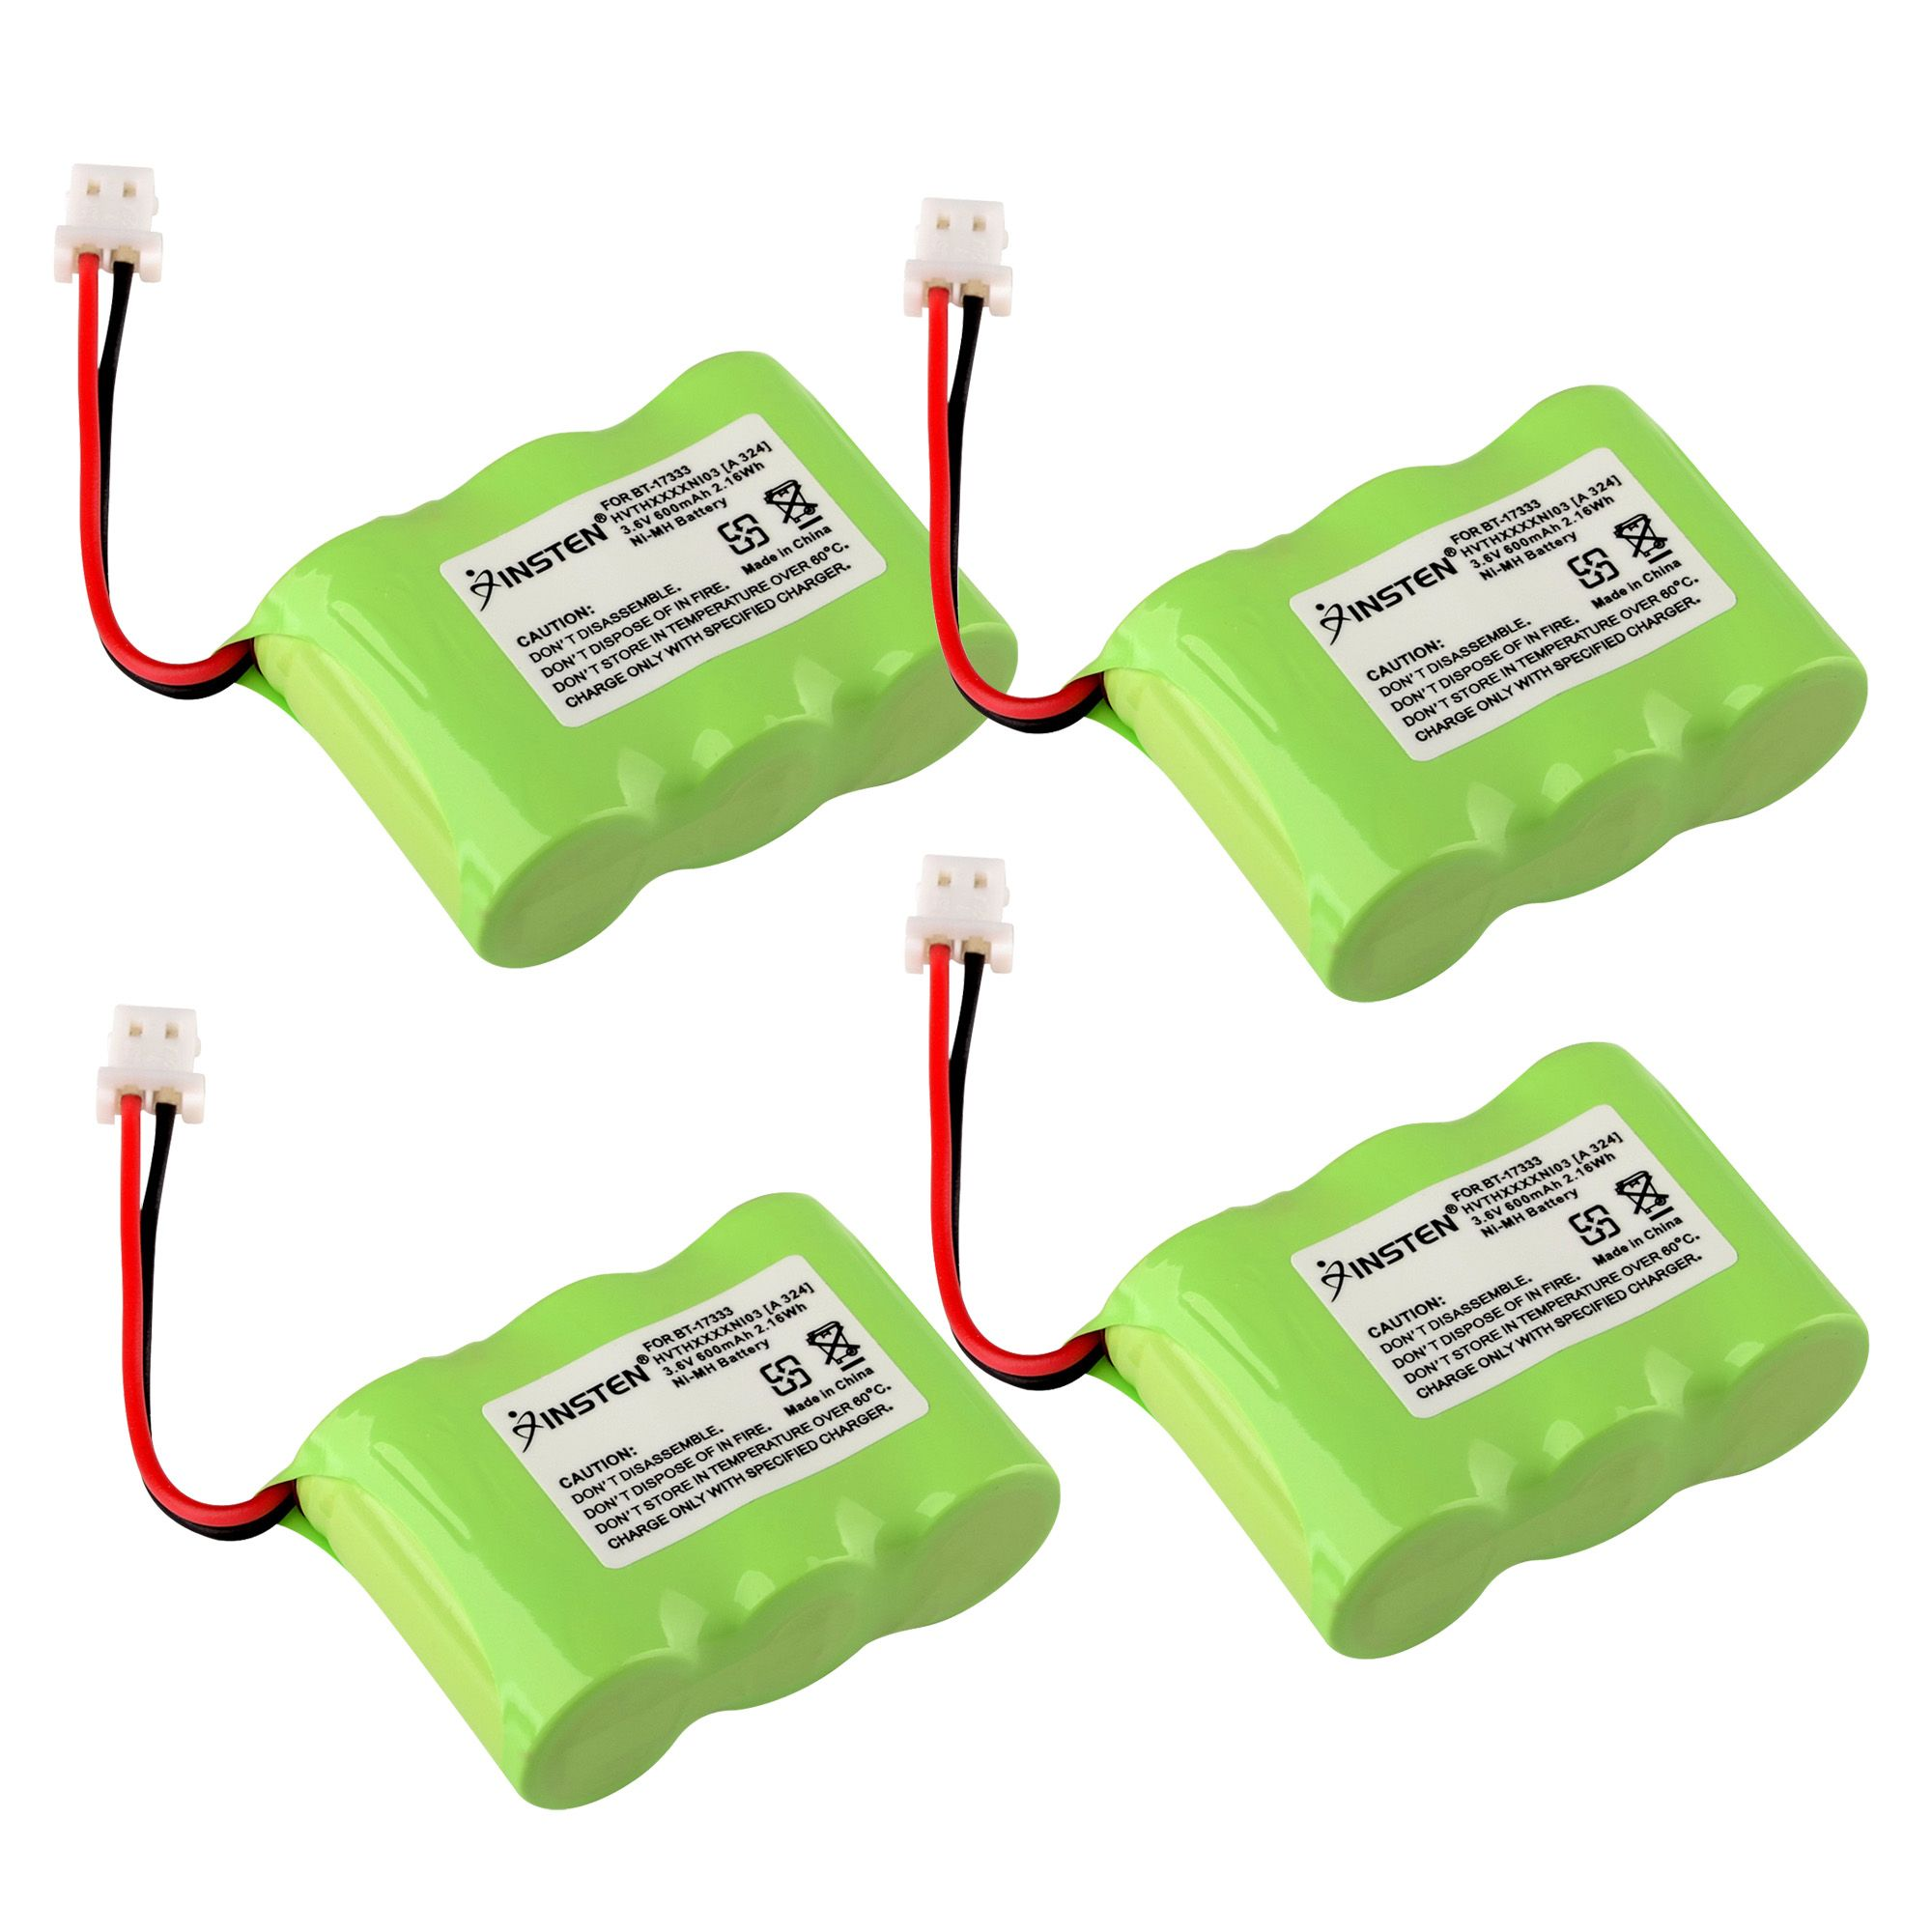 Insten (4 Pack) Extra Ni-Mh Cordless Phone Battery Power For Vtech BT-17333 2111 239069 5111 5113 5121 5122 5211 (4-Pack Bundle)